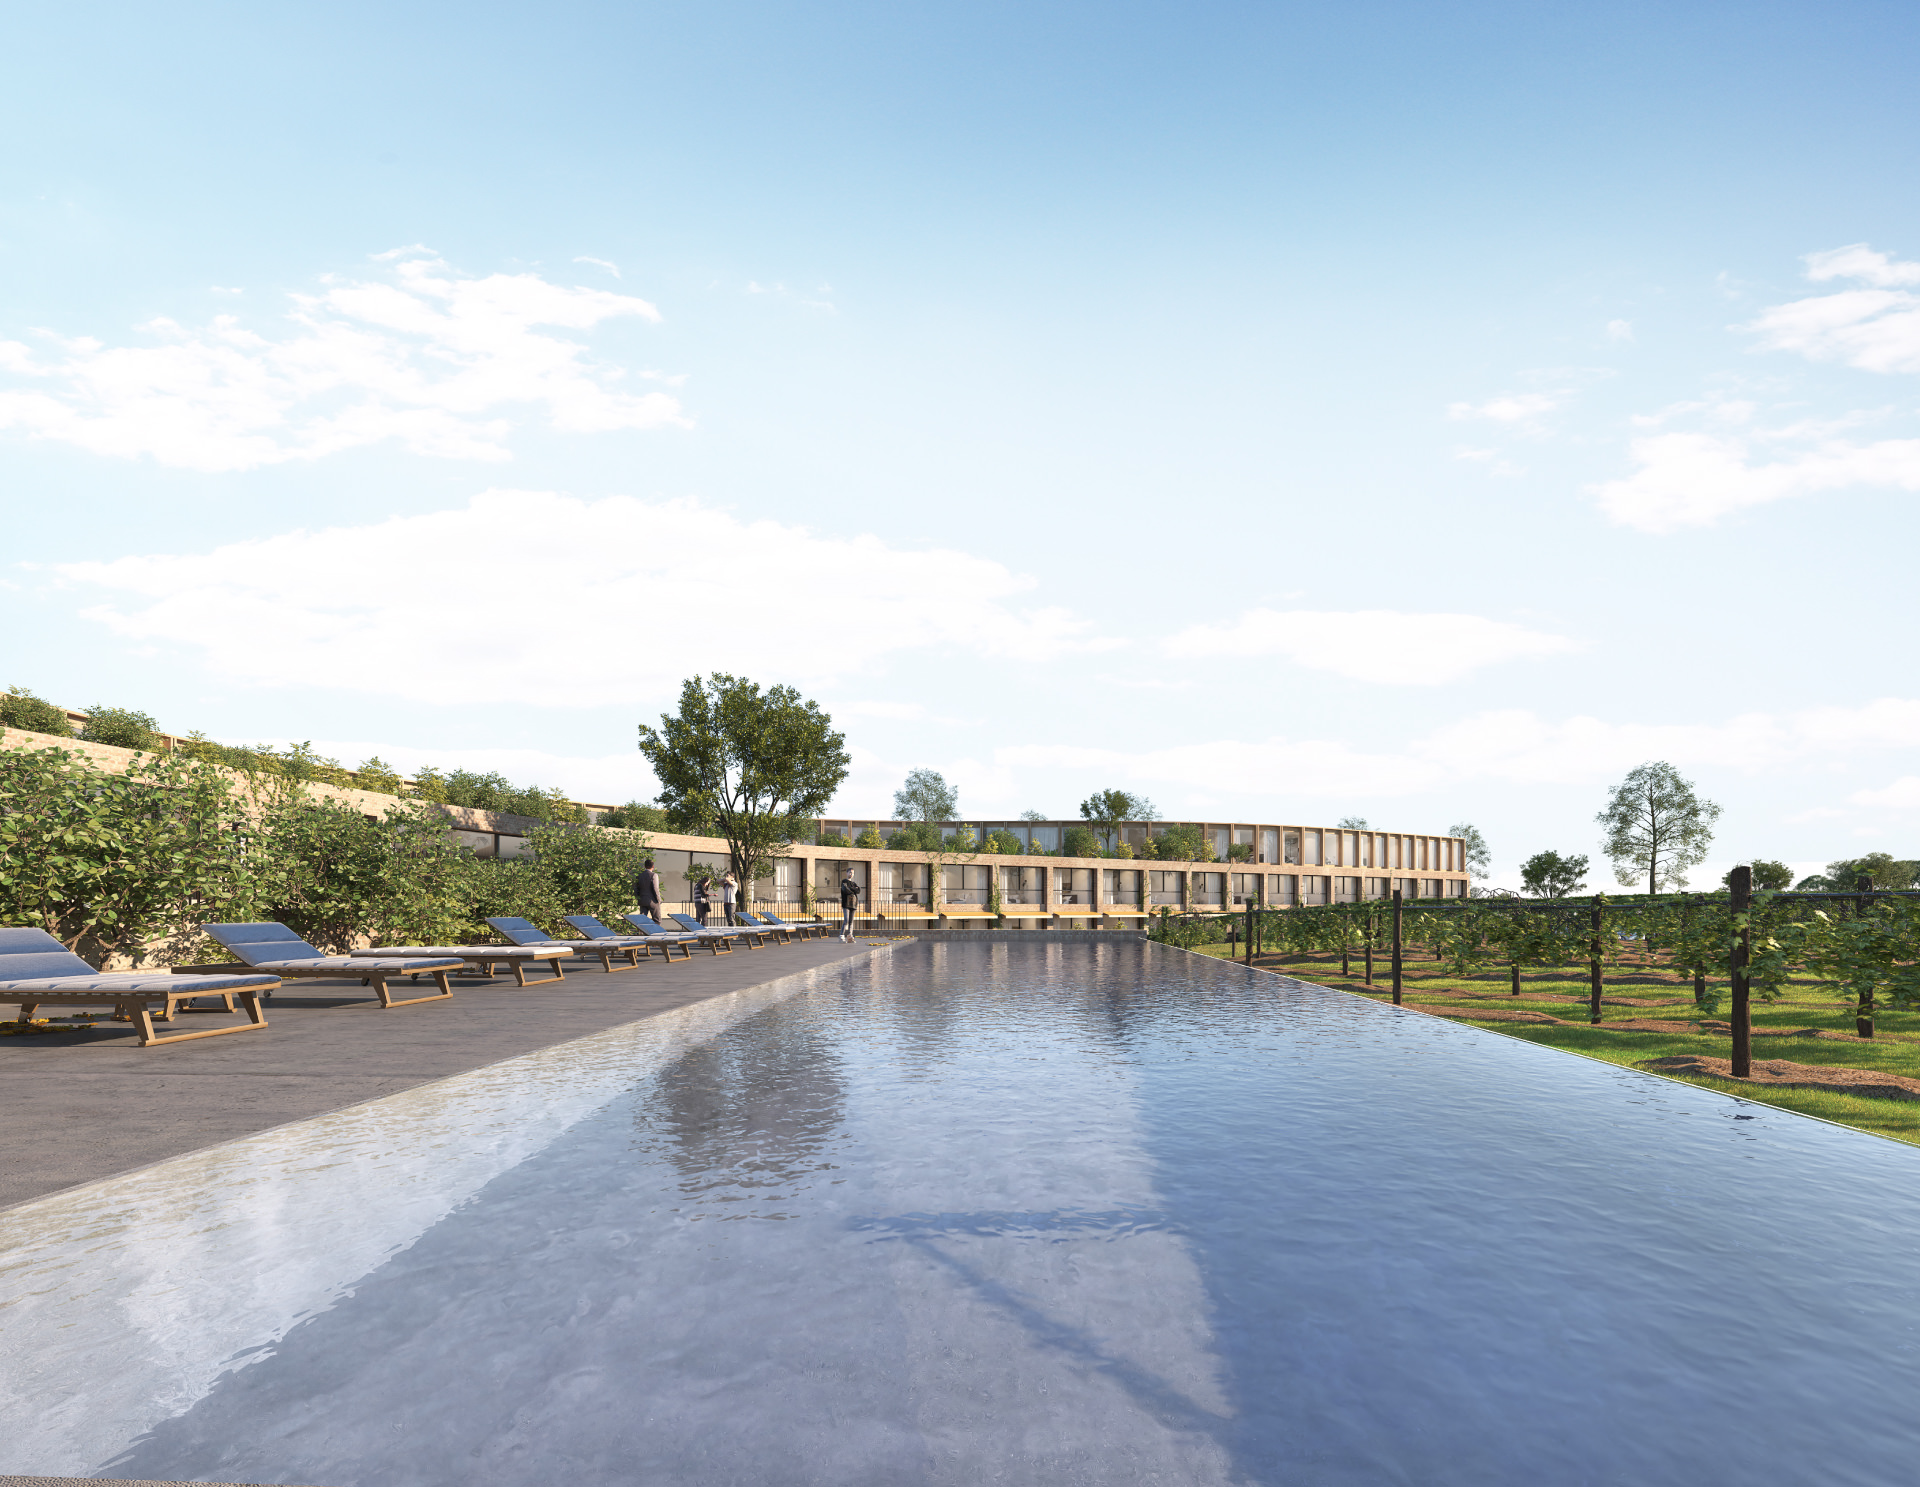 Cera Stribley Architecture Interior Design Diggers Rest Hotel outdoor pool